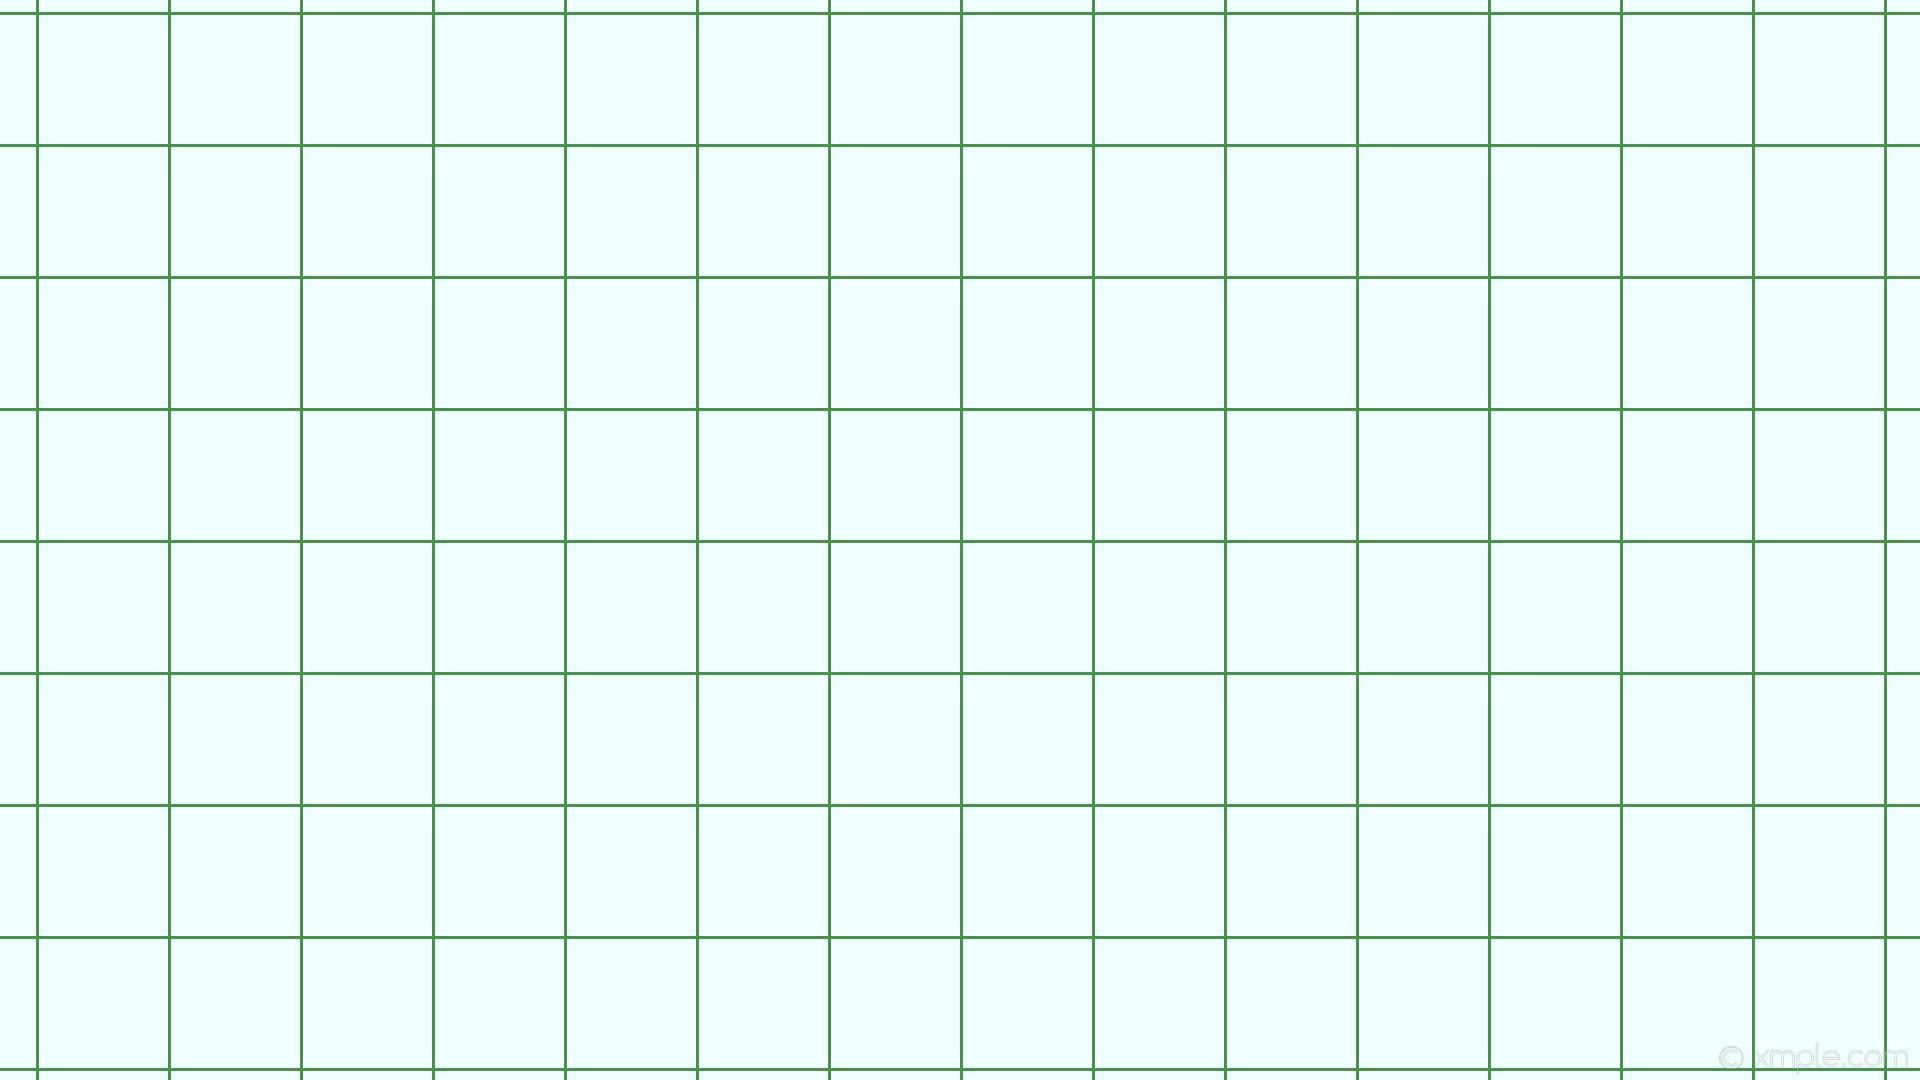 1920x1080 wallpaper white grid graph paper green azure dark green #f0ffff #006400 0°  3px